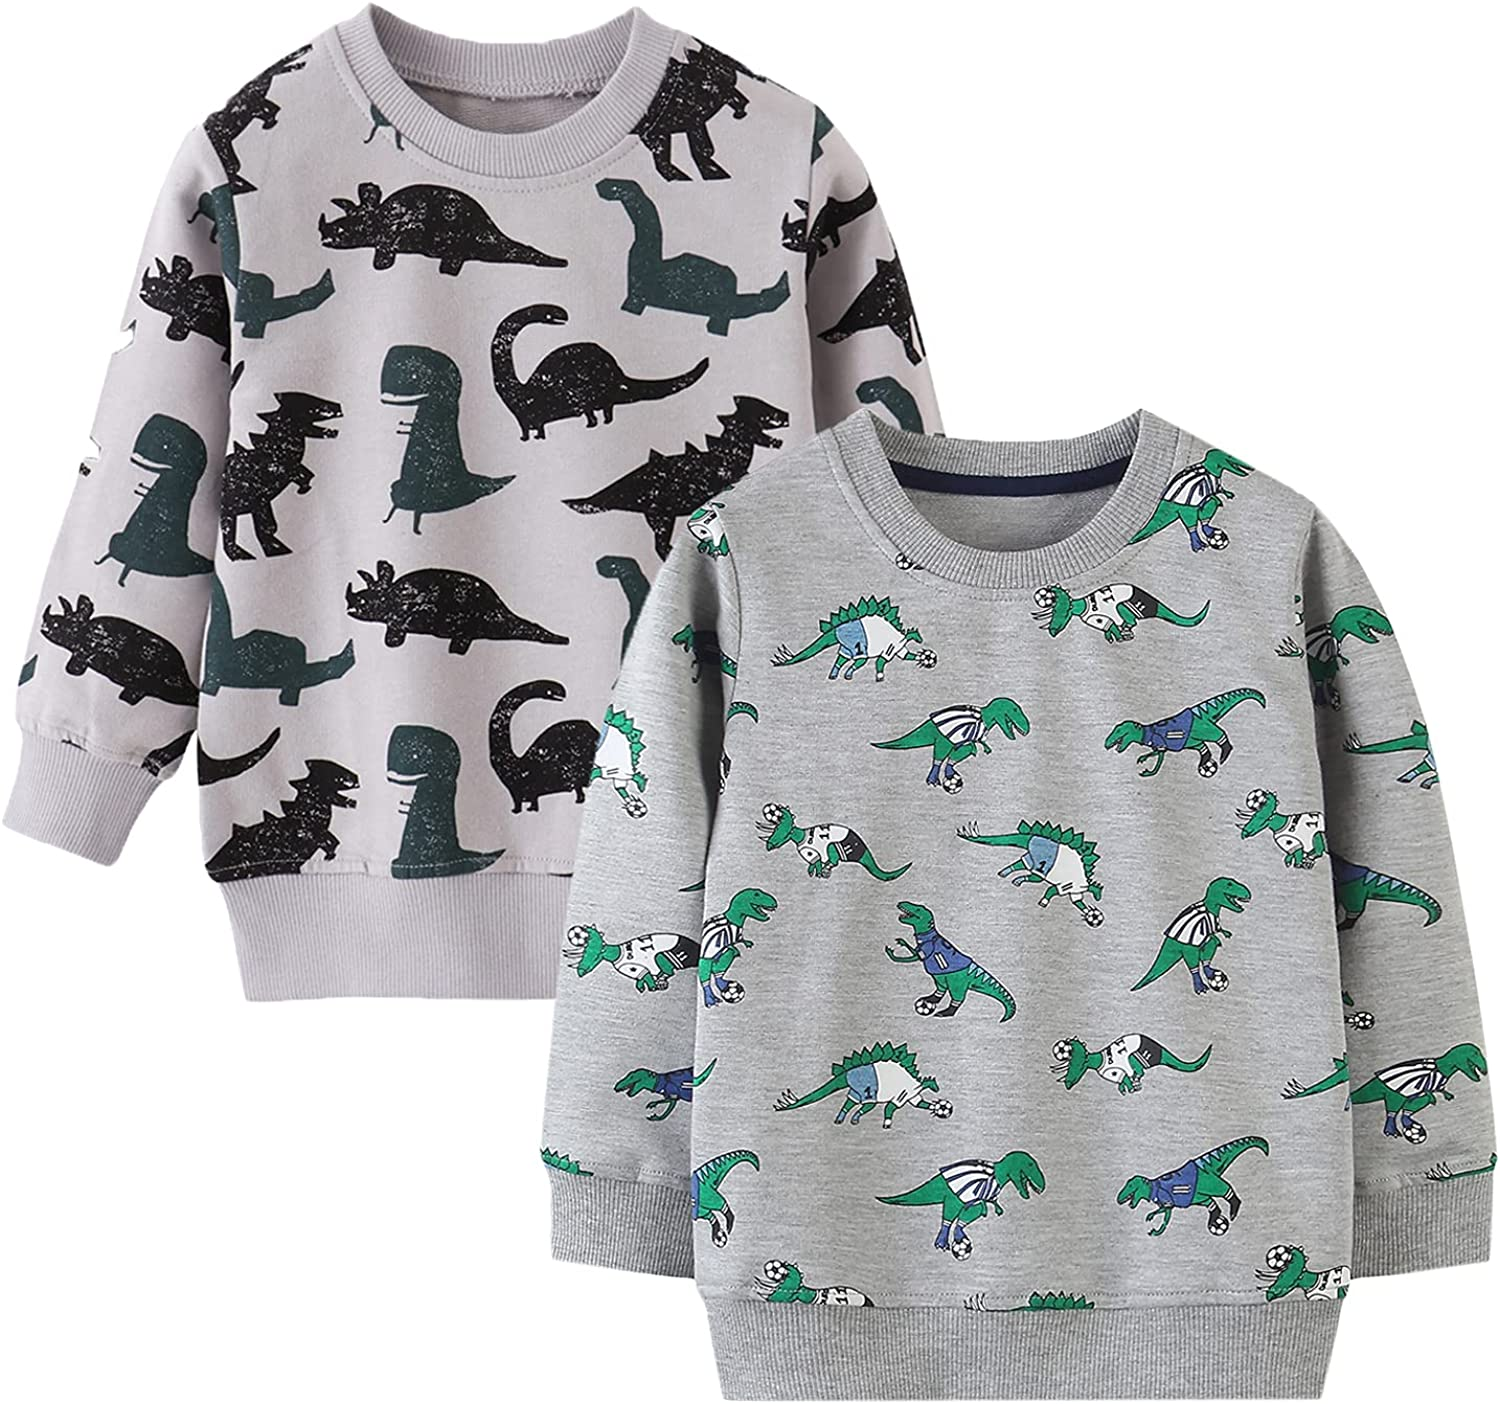 LeeXiang Toddler Boy 1Pack or 2Pack Sweatshirt, Kids Round Neck Cotton Pullover